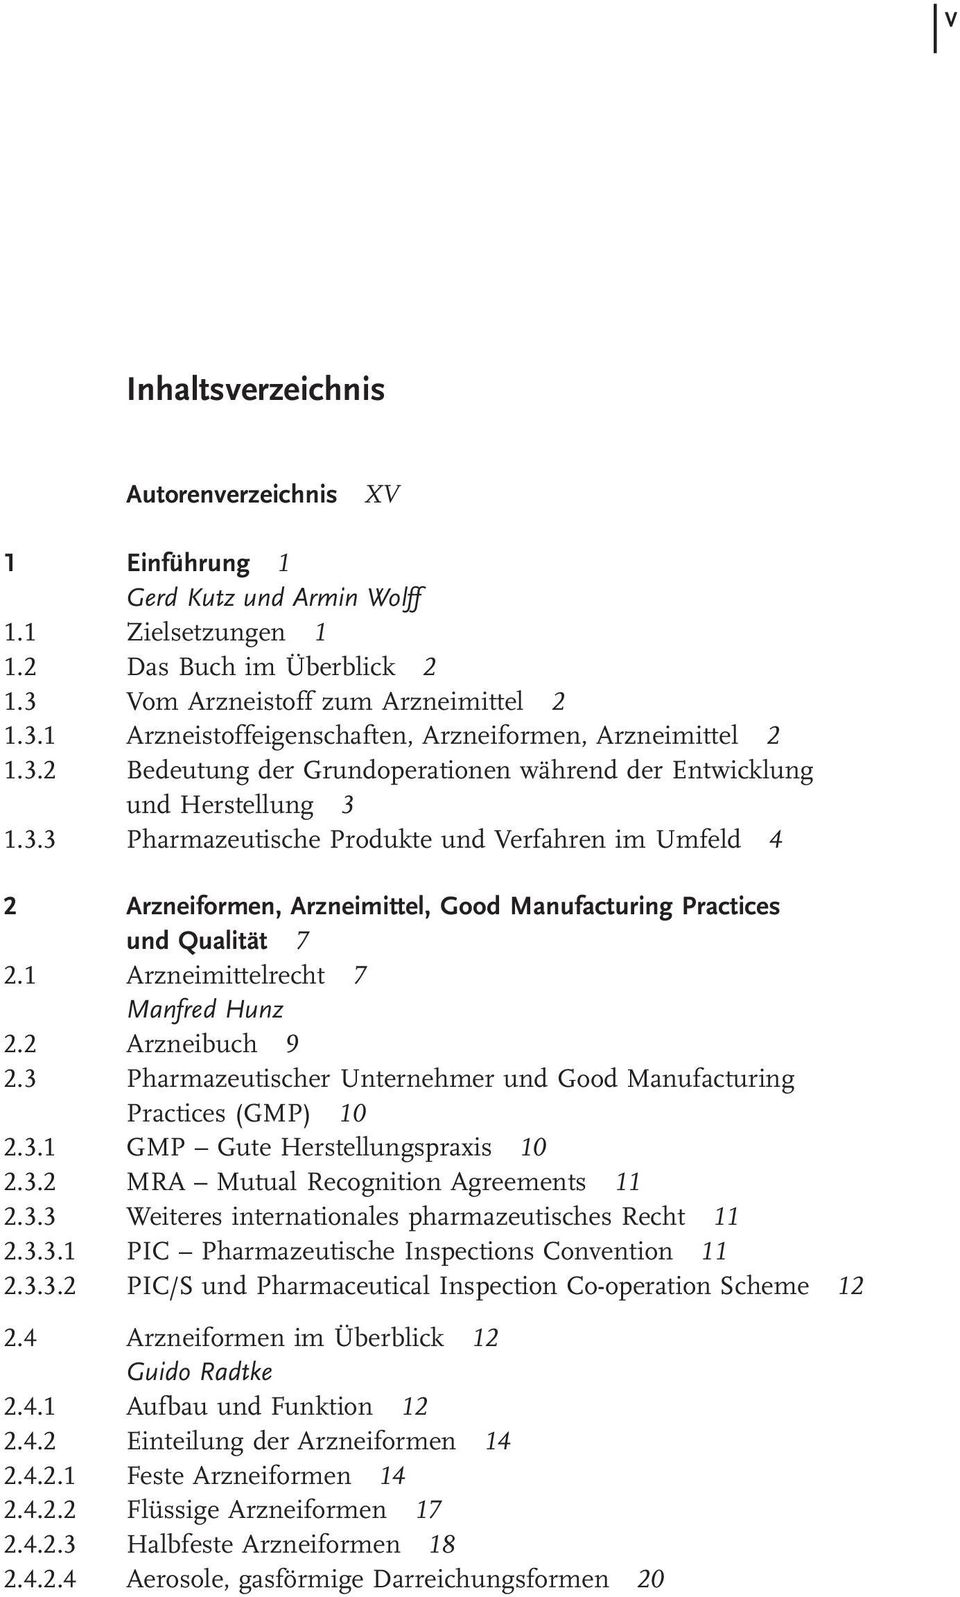 1 Arzneimittelrecht 7 Manfred Hunz 2.2 Arzneibuch 9 2.3 Pharmazeutischer Unternehmer und Good Manufacturing Practices (GMP) 10 2.3.1 GMP Gute Herstellungspraxis 10 2.3.2 MRA Mutual Recognition Agreements 11 2.